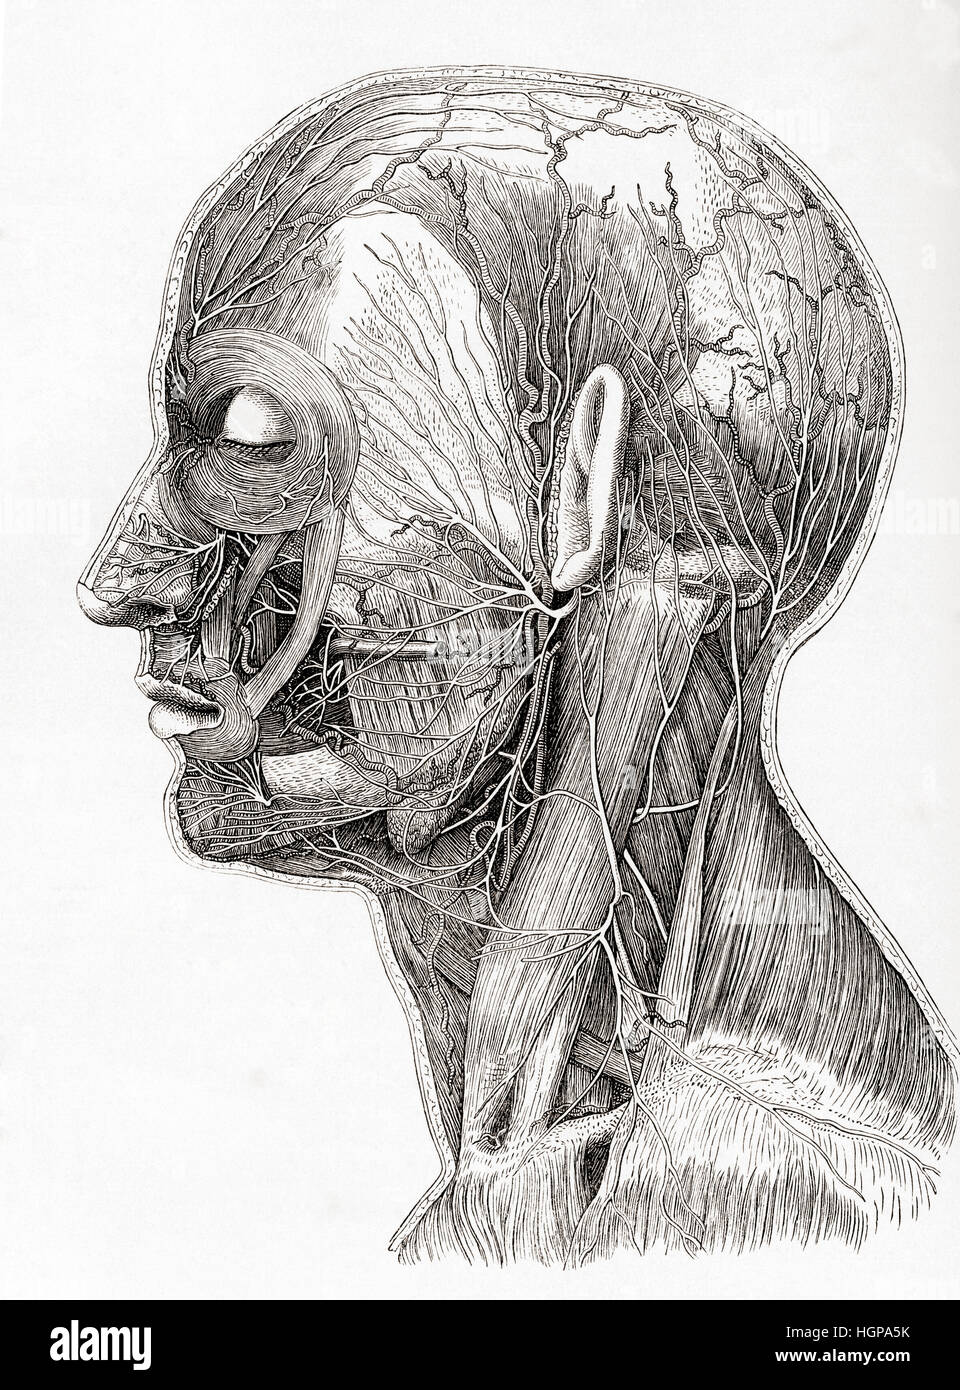 Diagram showing the superficial nerves of the human head and neck. From Meyers Lexicon, published 1924. - Stock Image